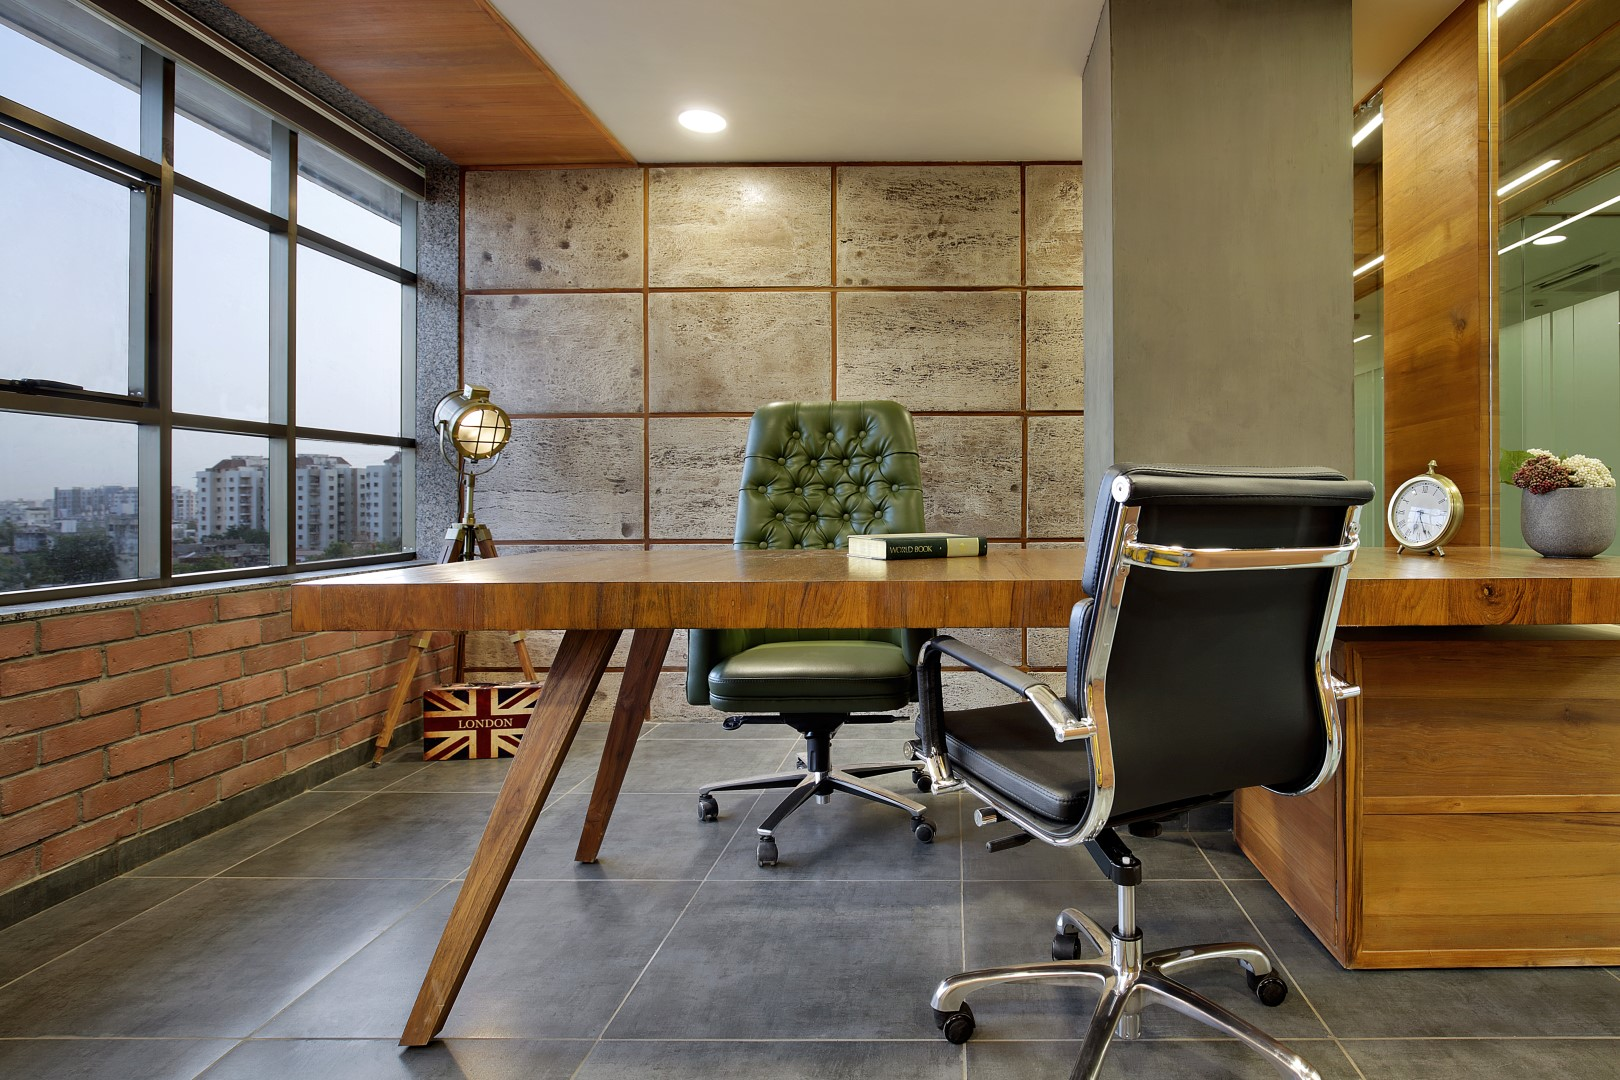 office interior design (5)